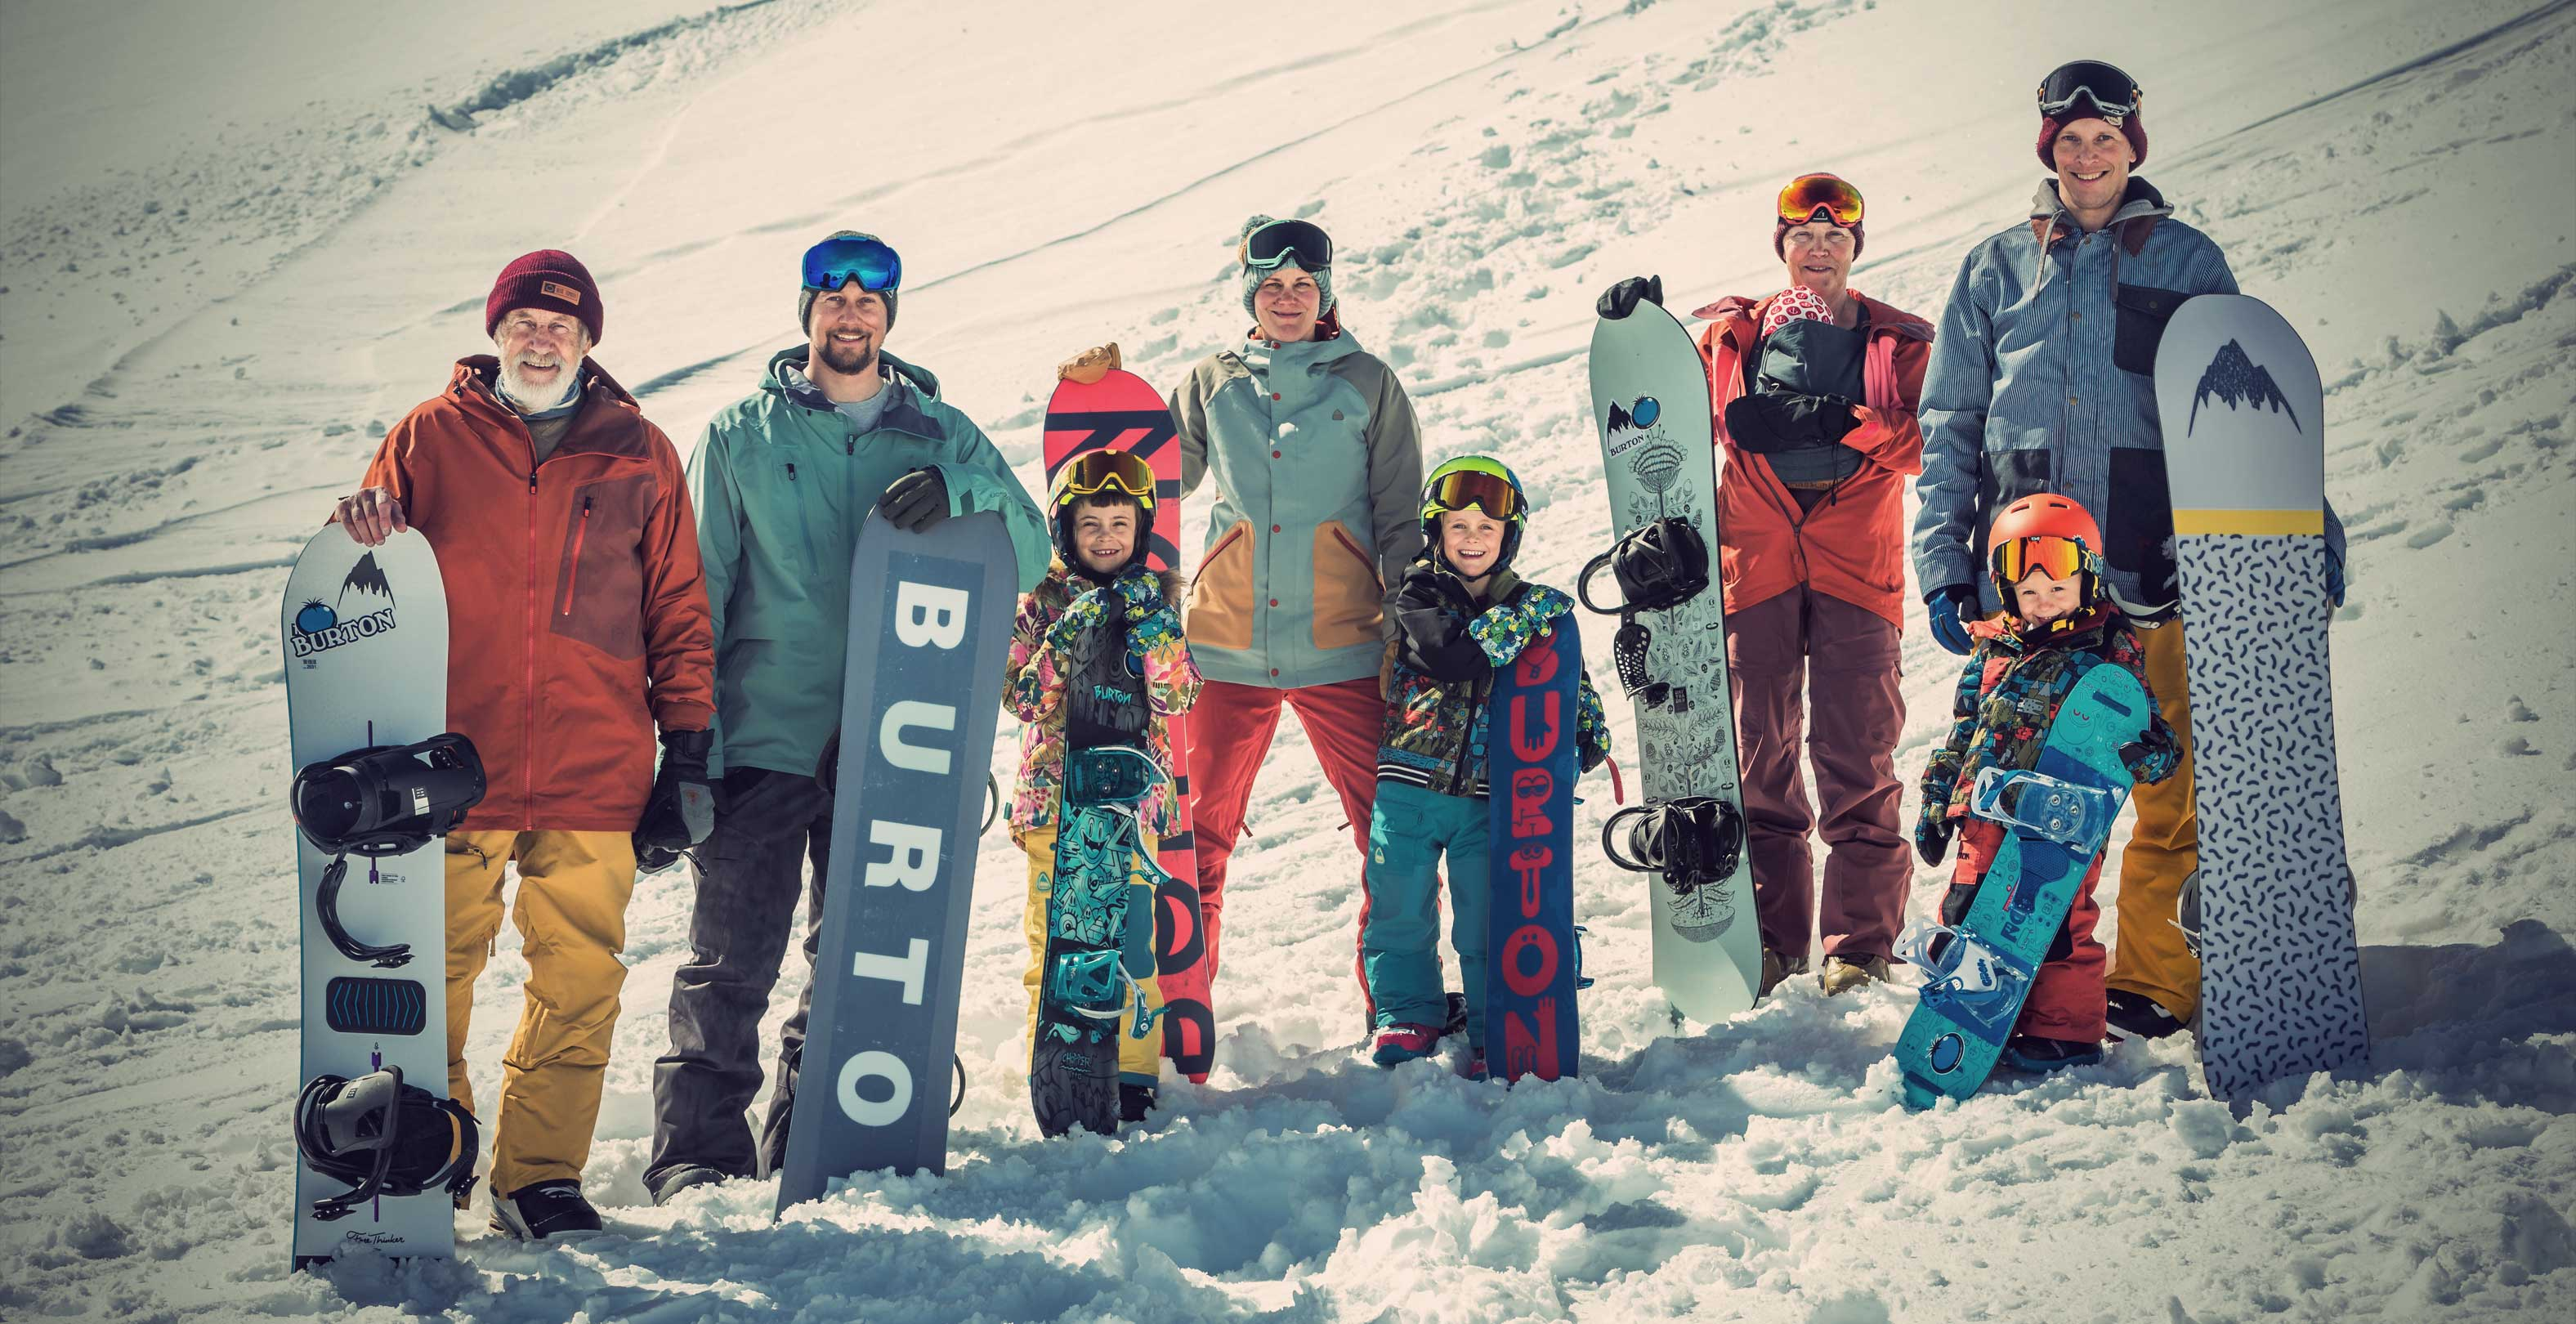 The Snowboarding Family